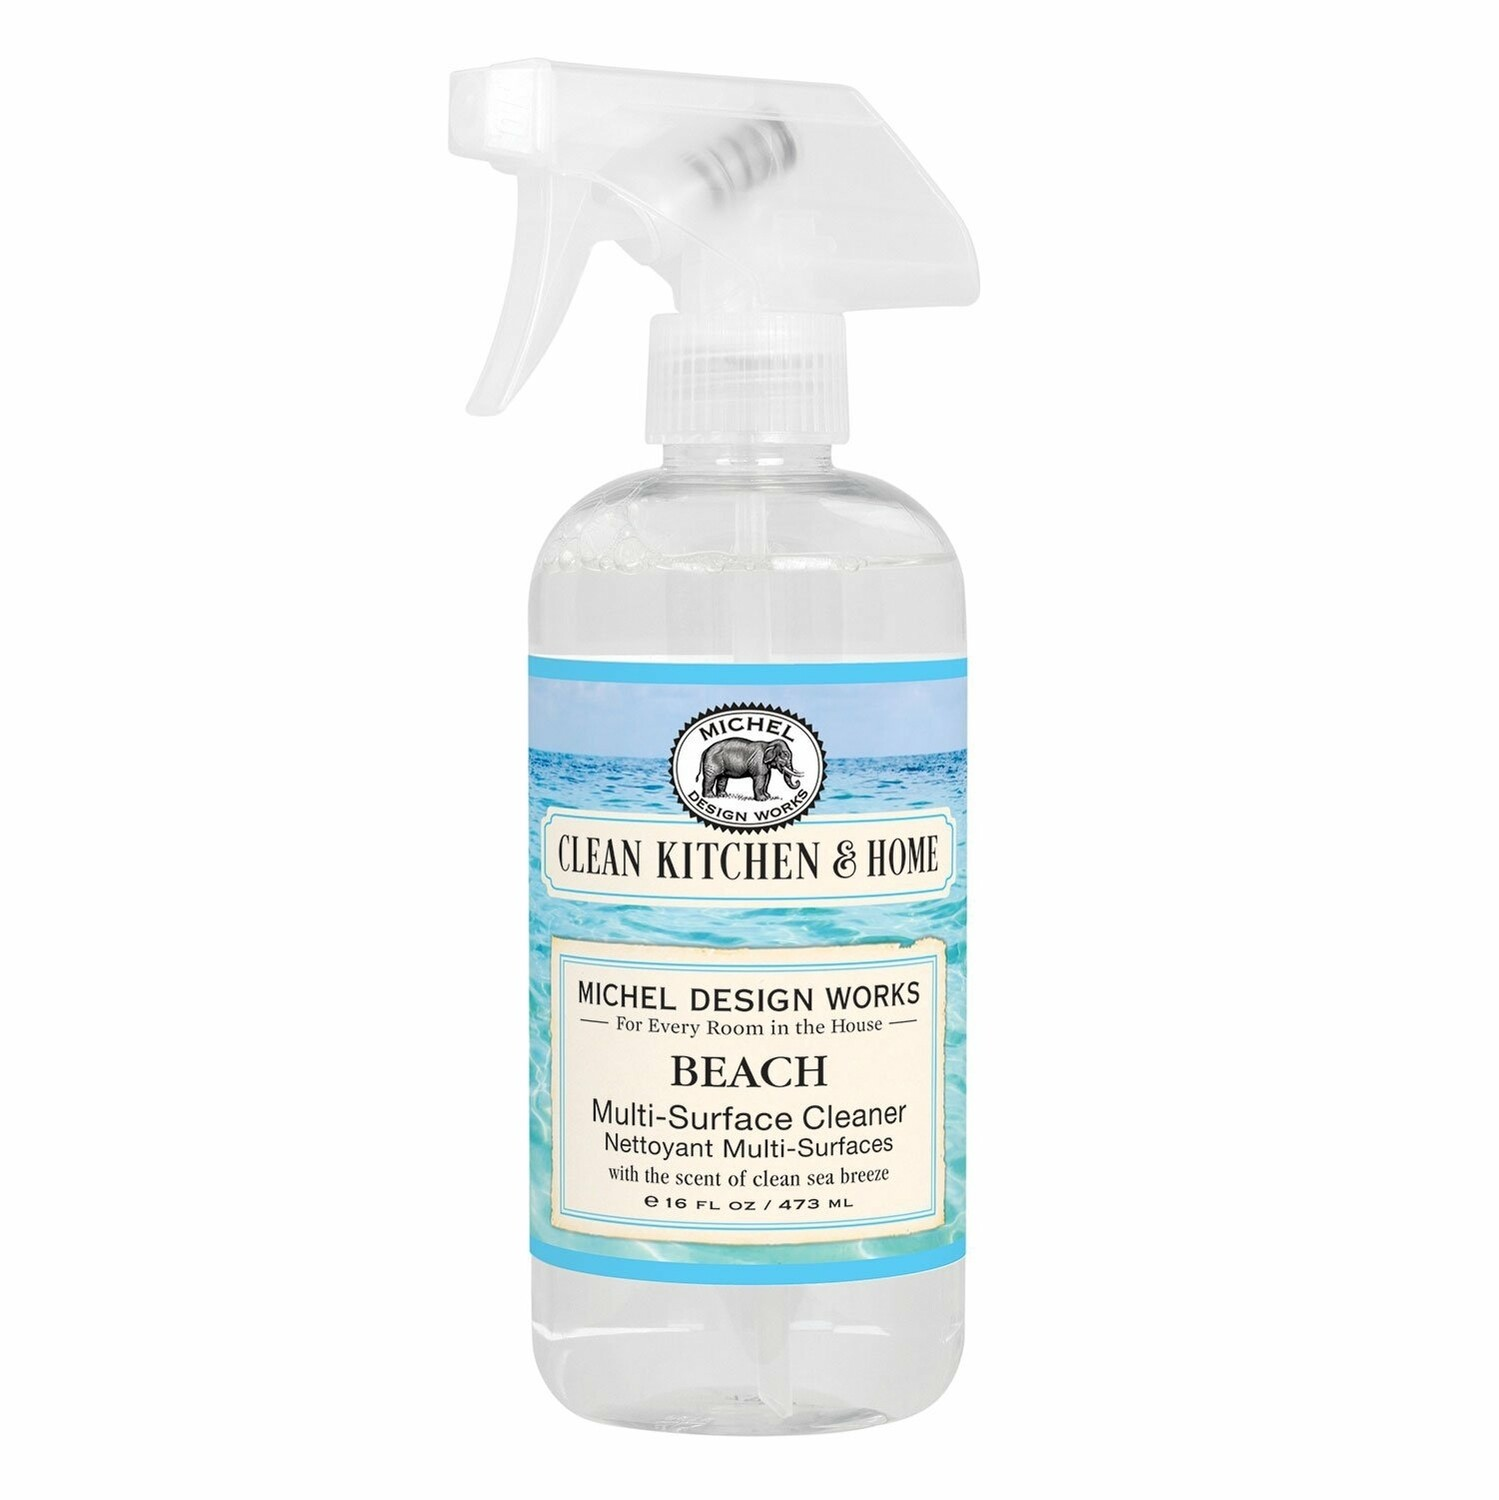 Michel Design Works Multi-Surface Cleaner | Multiple Scents